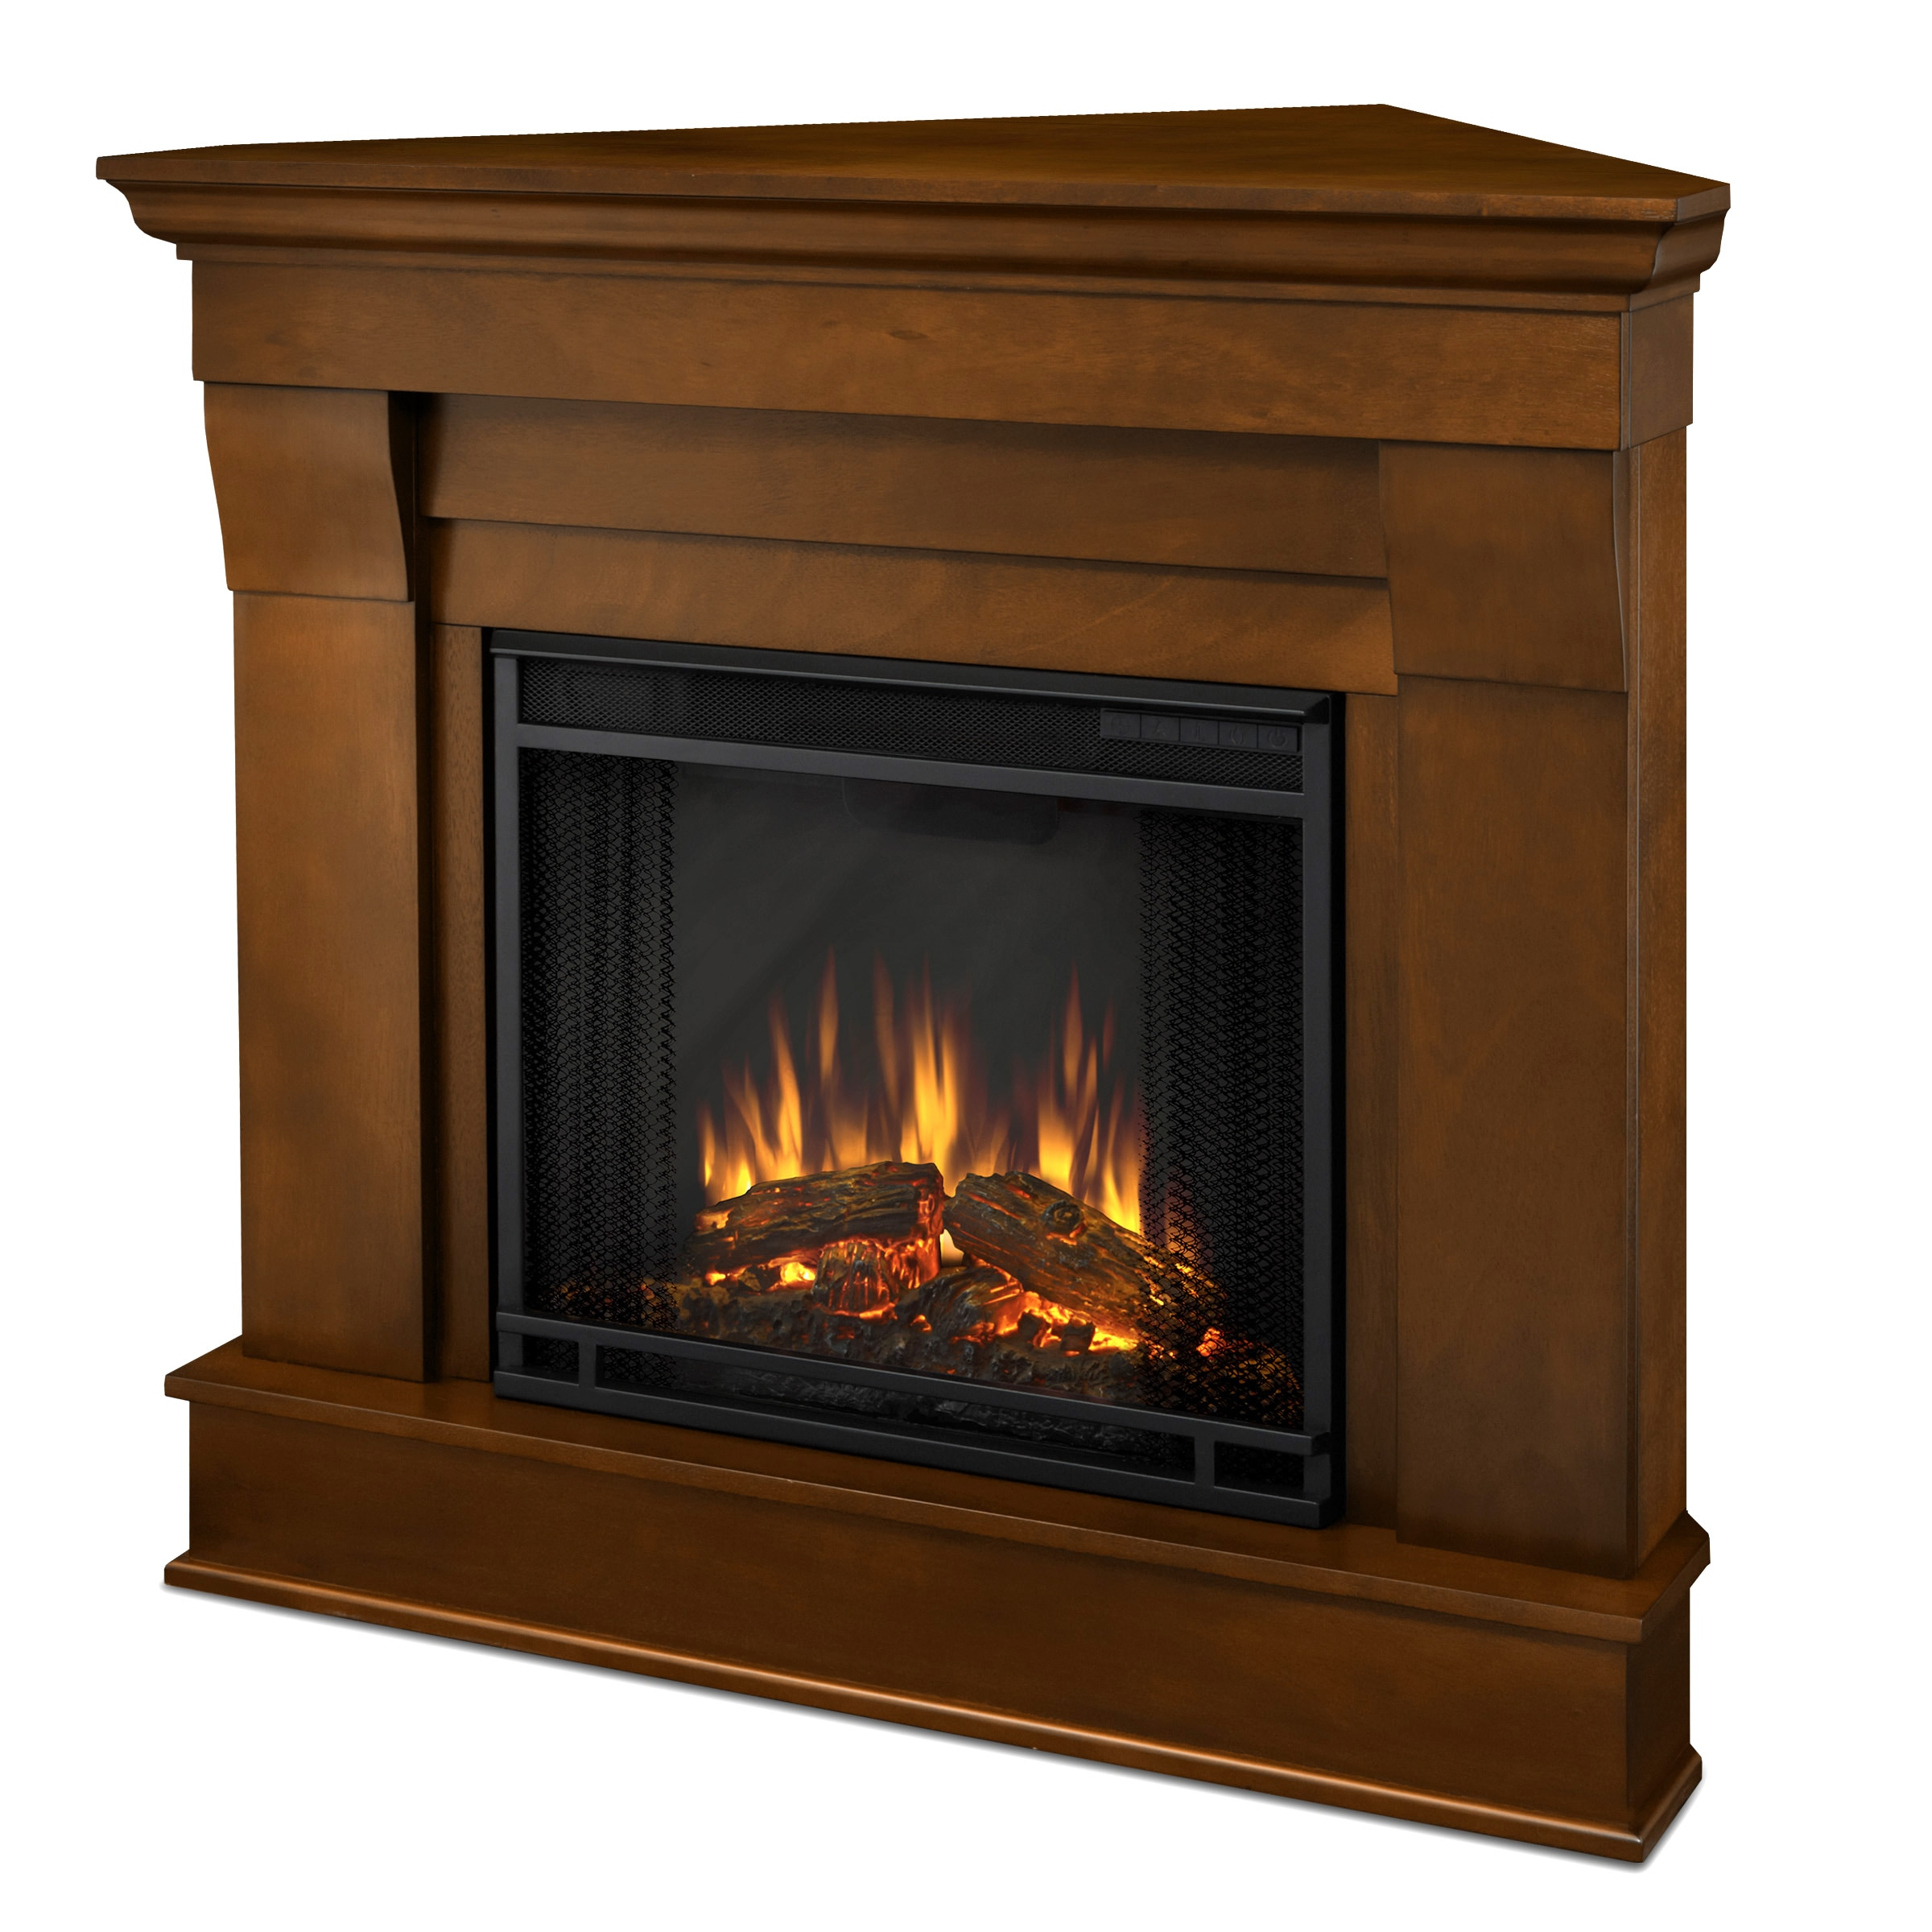 Real Flame Chateau Espresso Electric Corner Fireplace at Sears.com